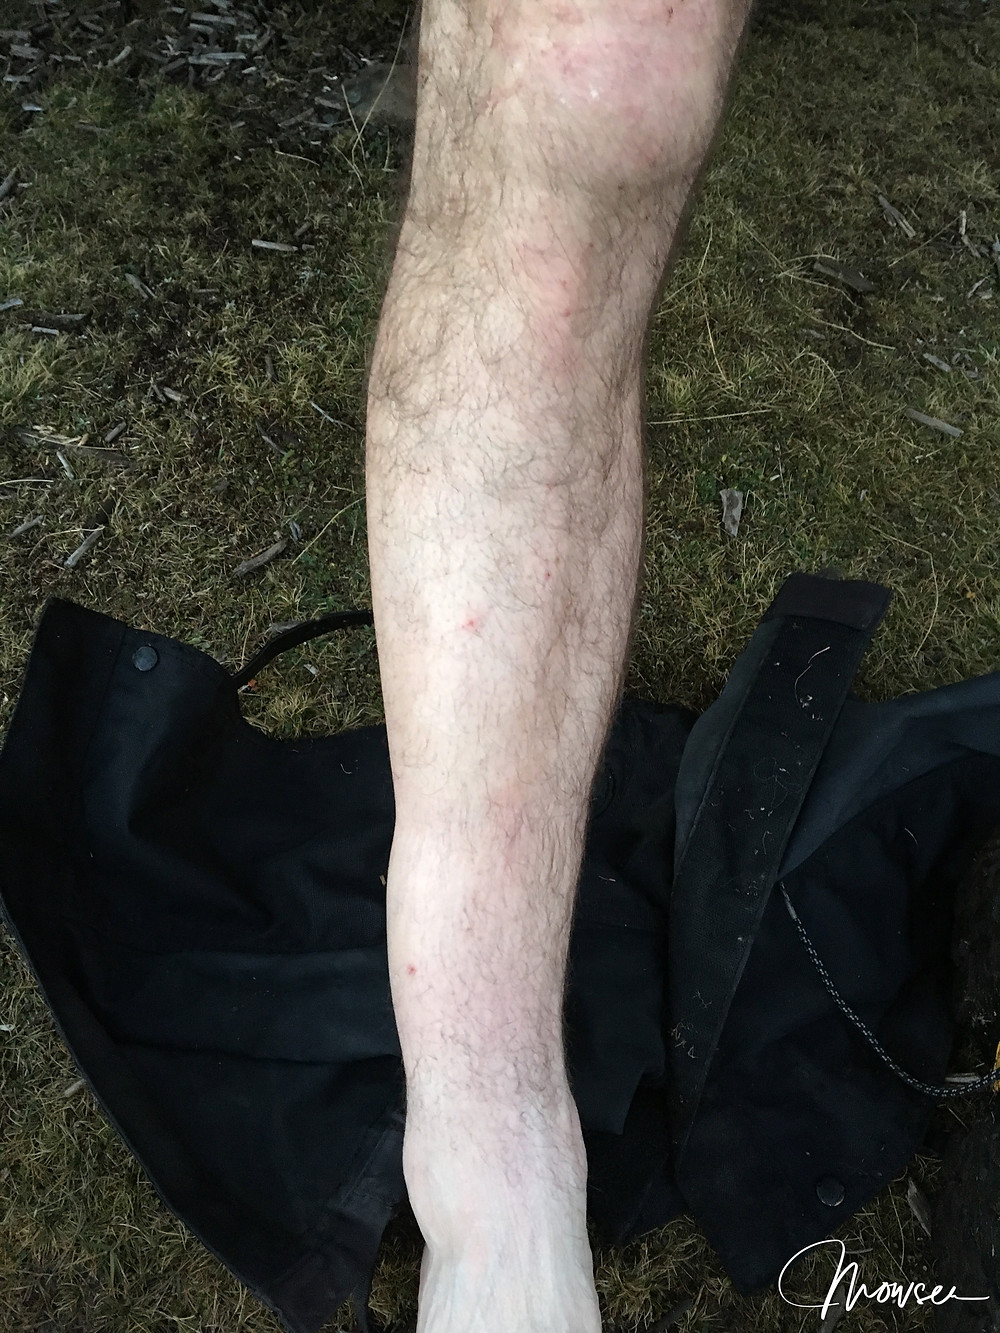 Broken ankle after a walk on Tassie's central plateau